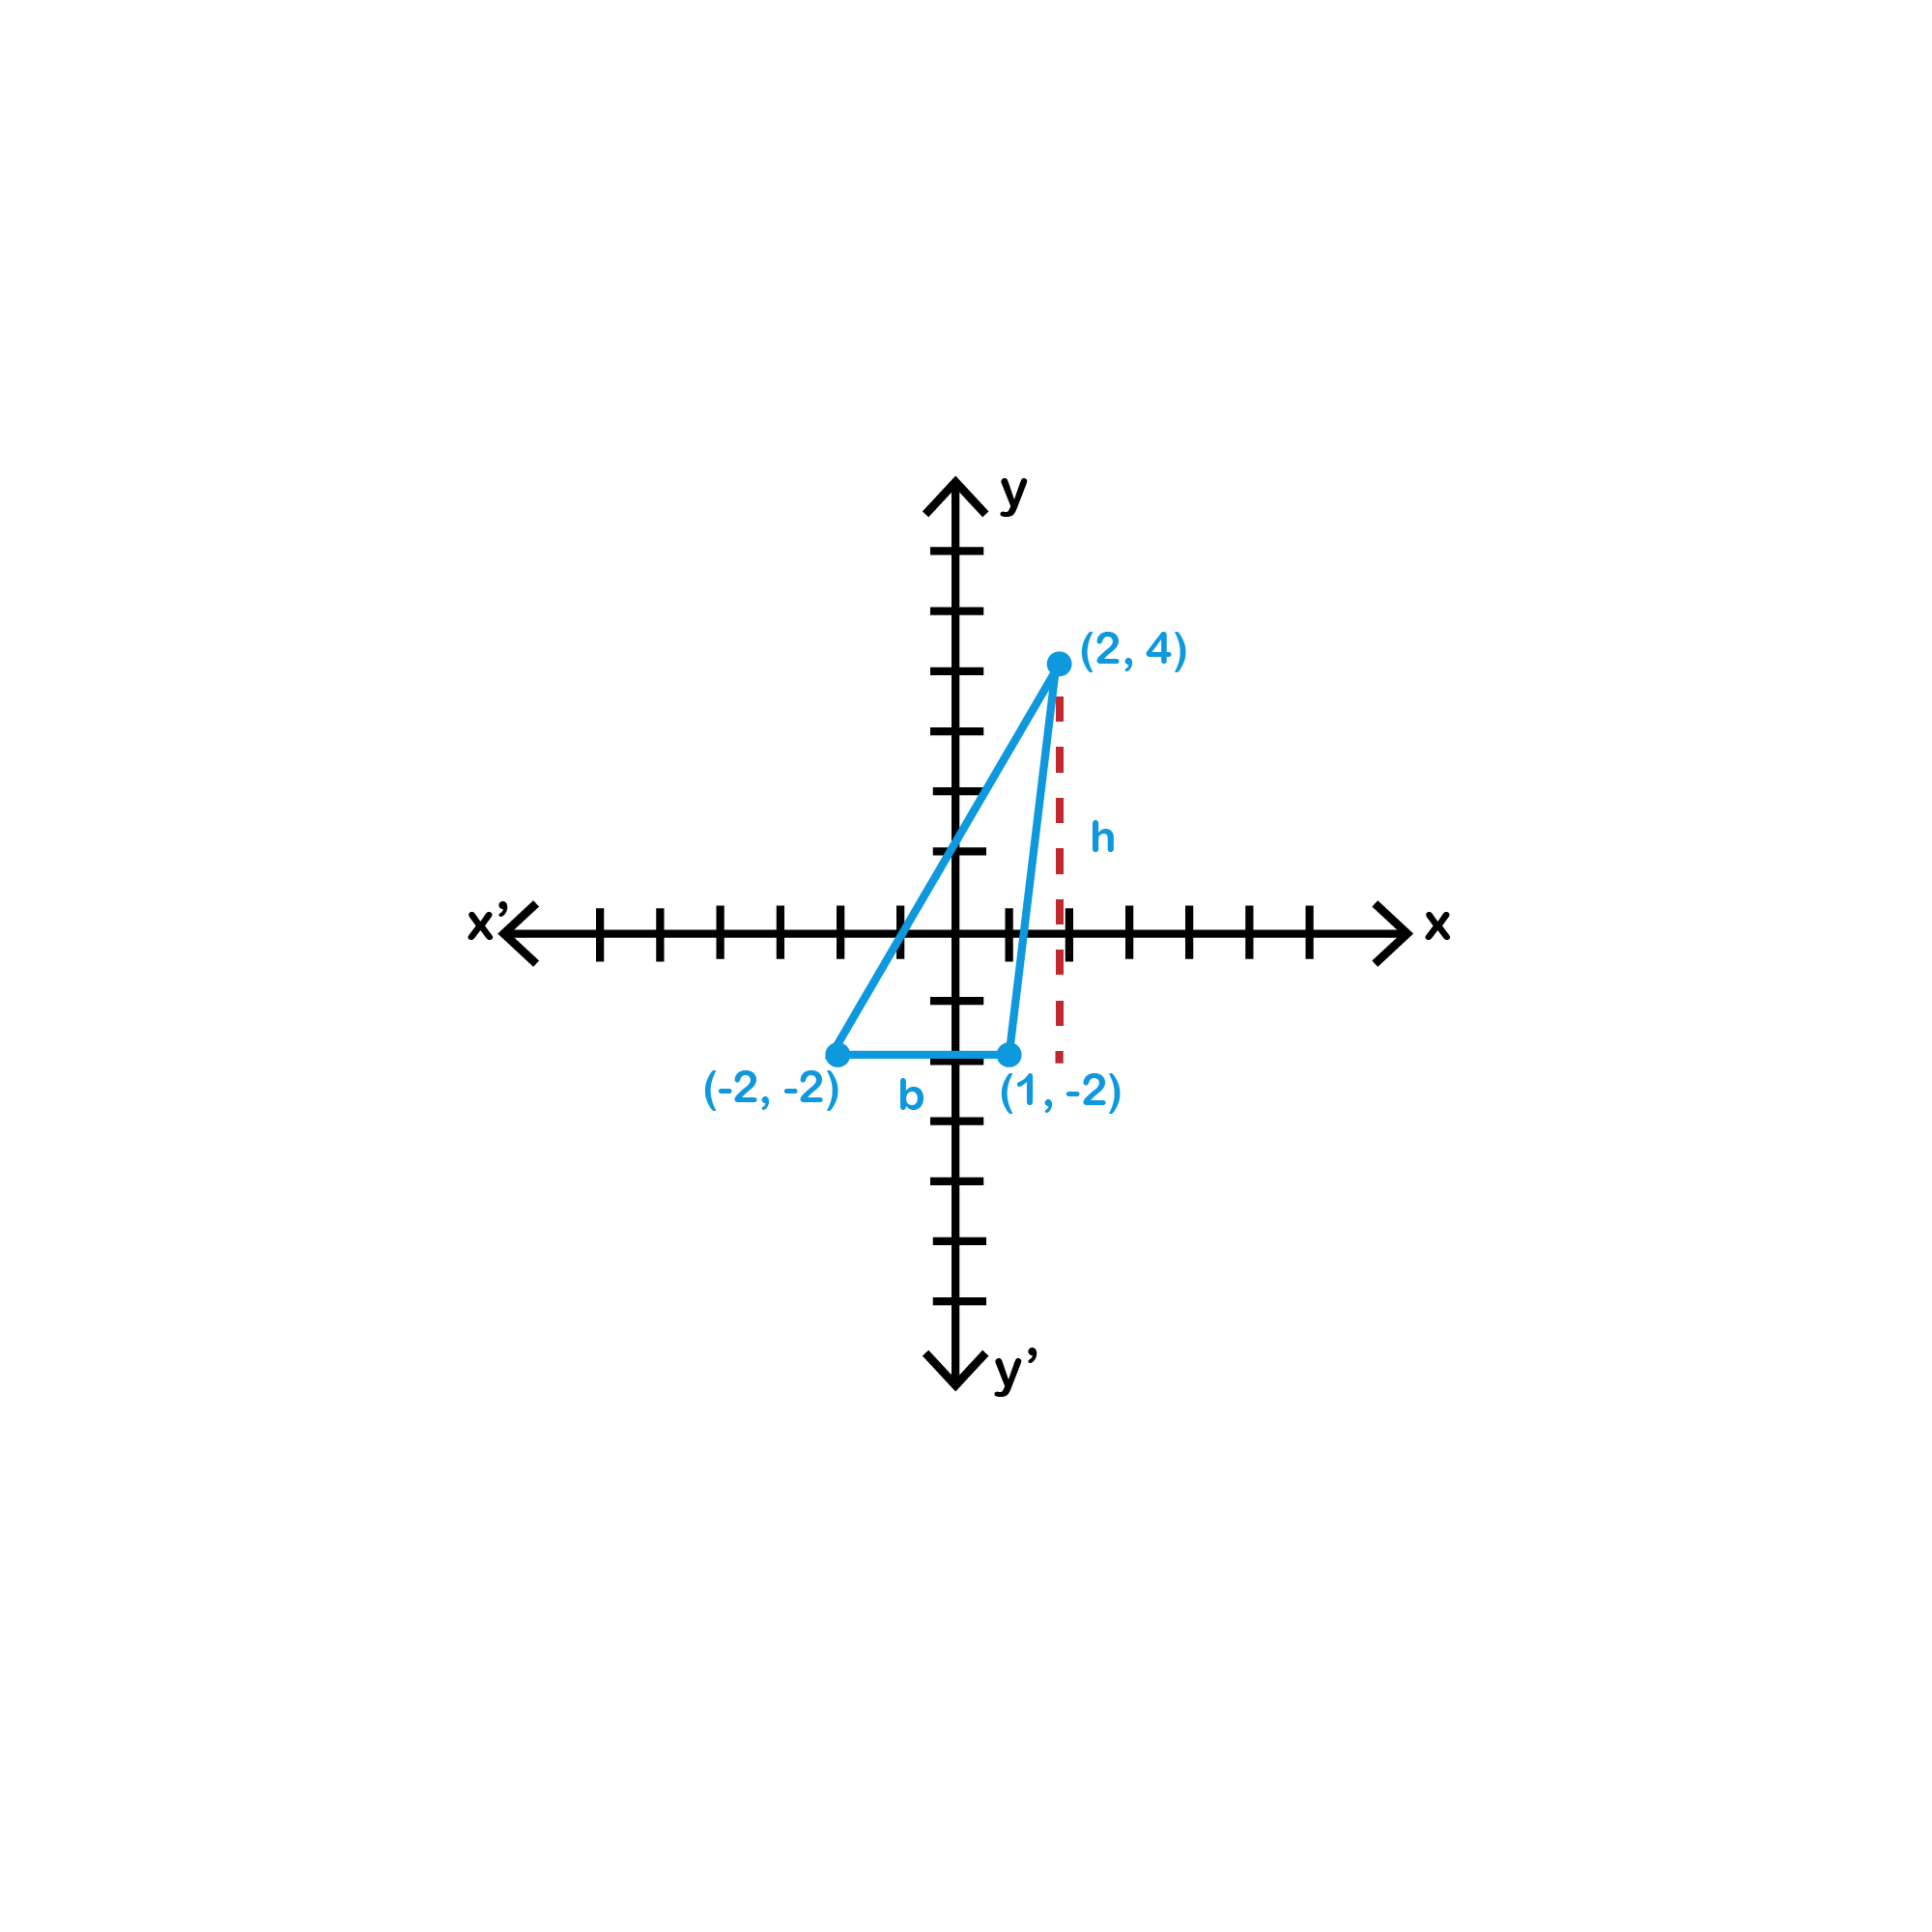 COORDINATE GEOMETRY is the study of geometry on a plane using a coordinate system. This plane is called a COORDINATE PLANE, which has scales of measurement along the x and y-axes.